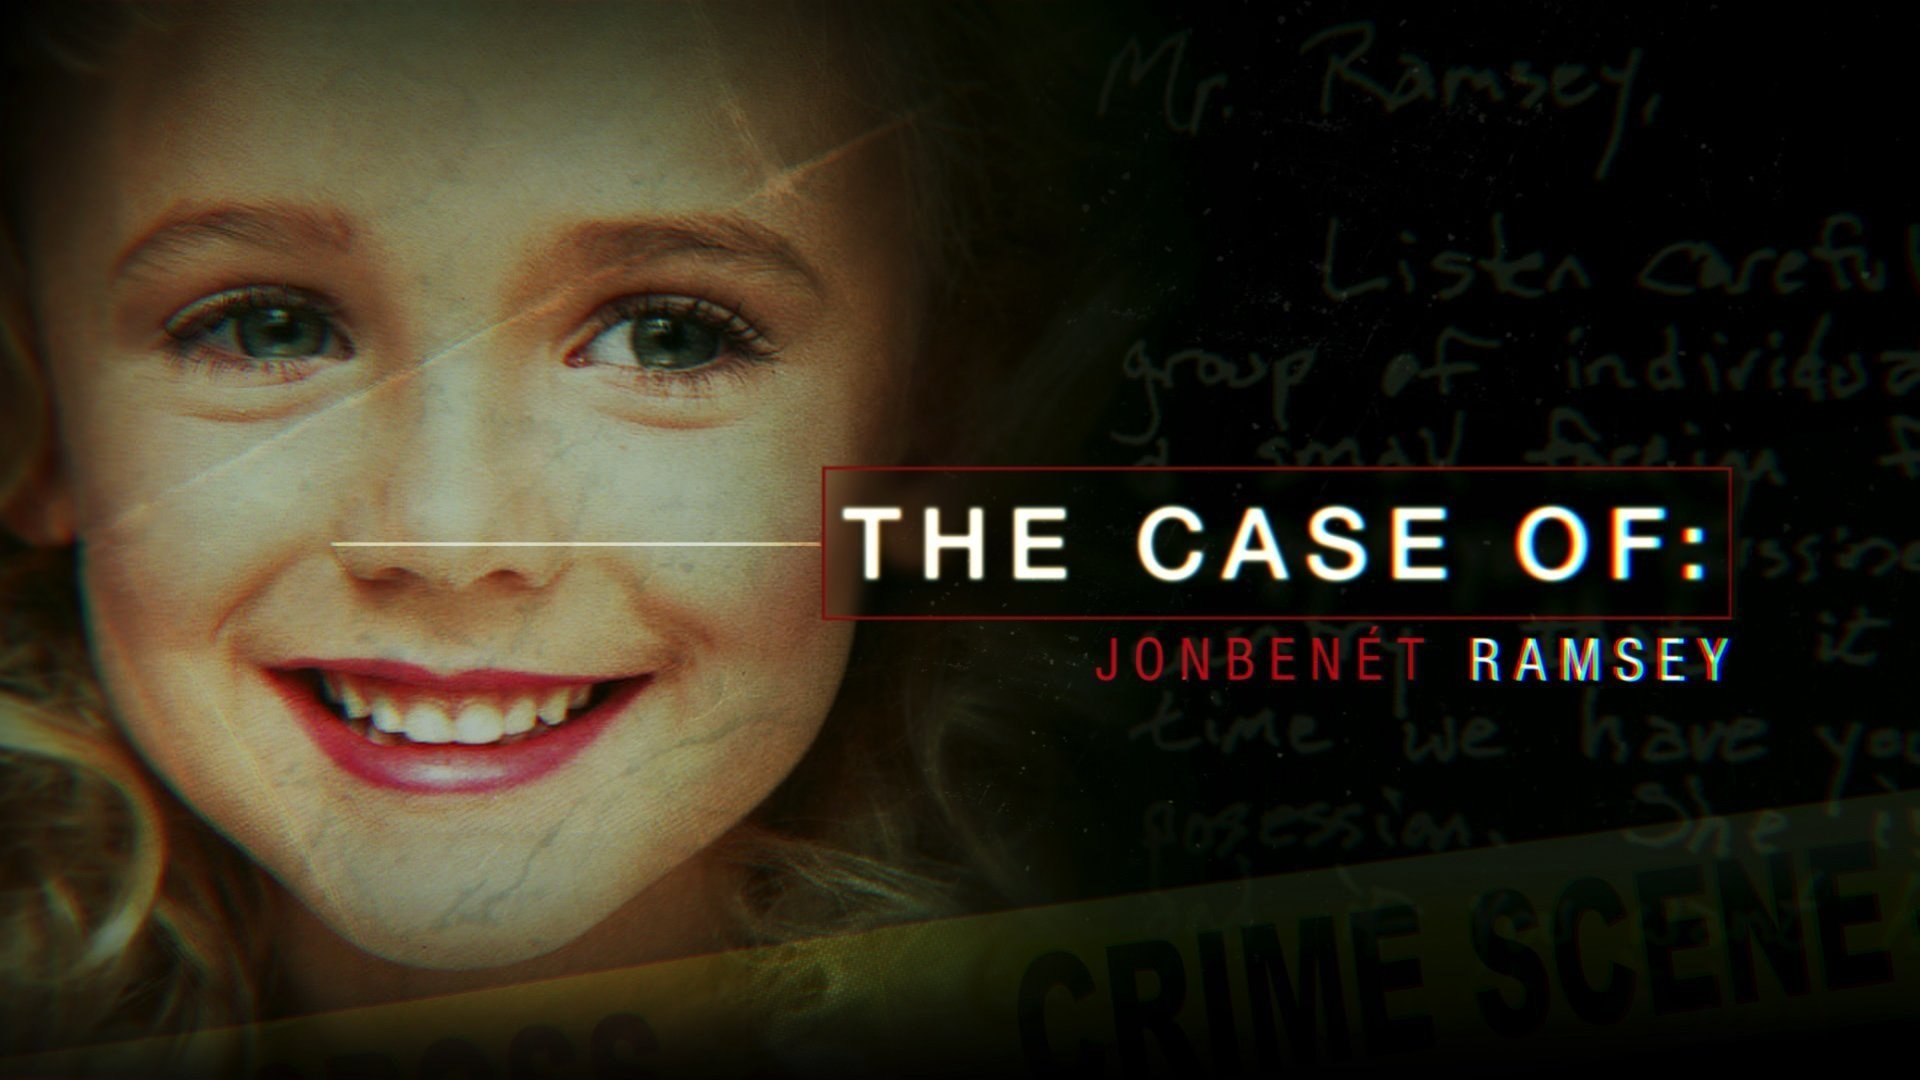 JonBenet Ramsey's unsolved murder re-examined in docuseries